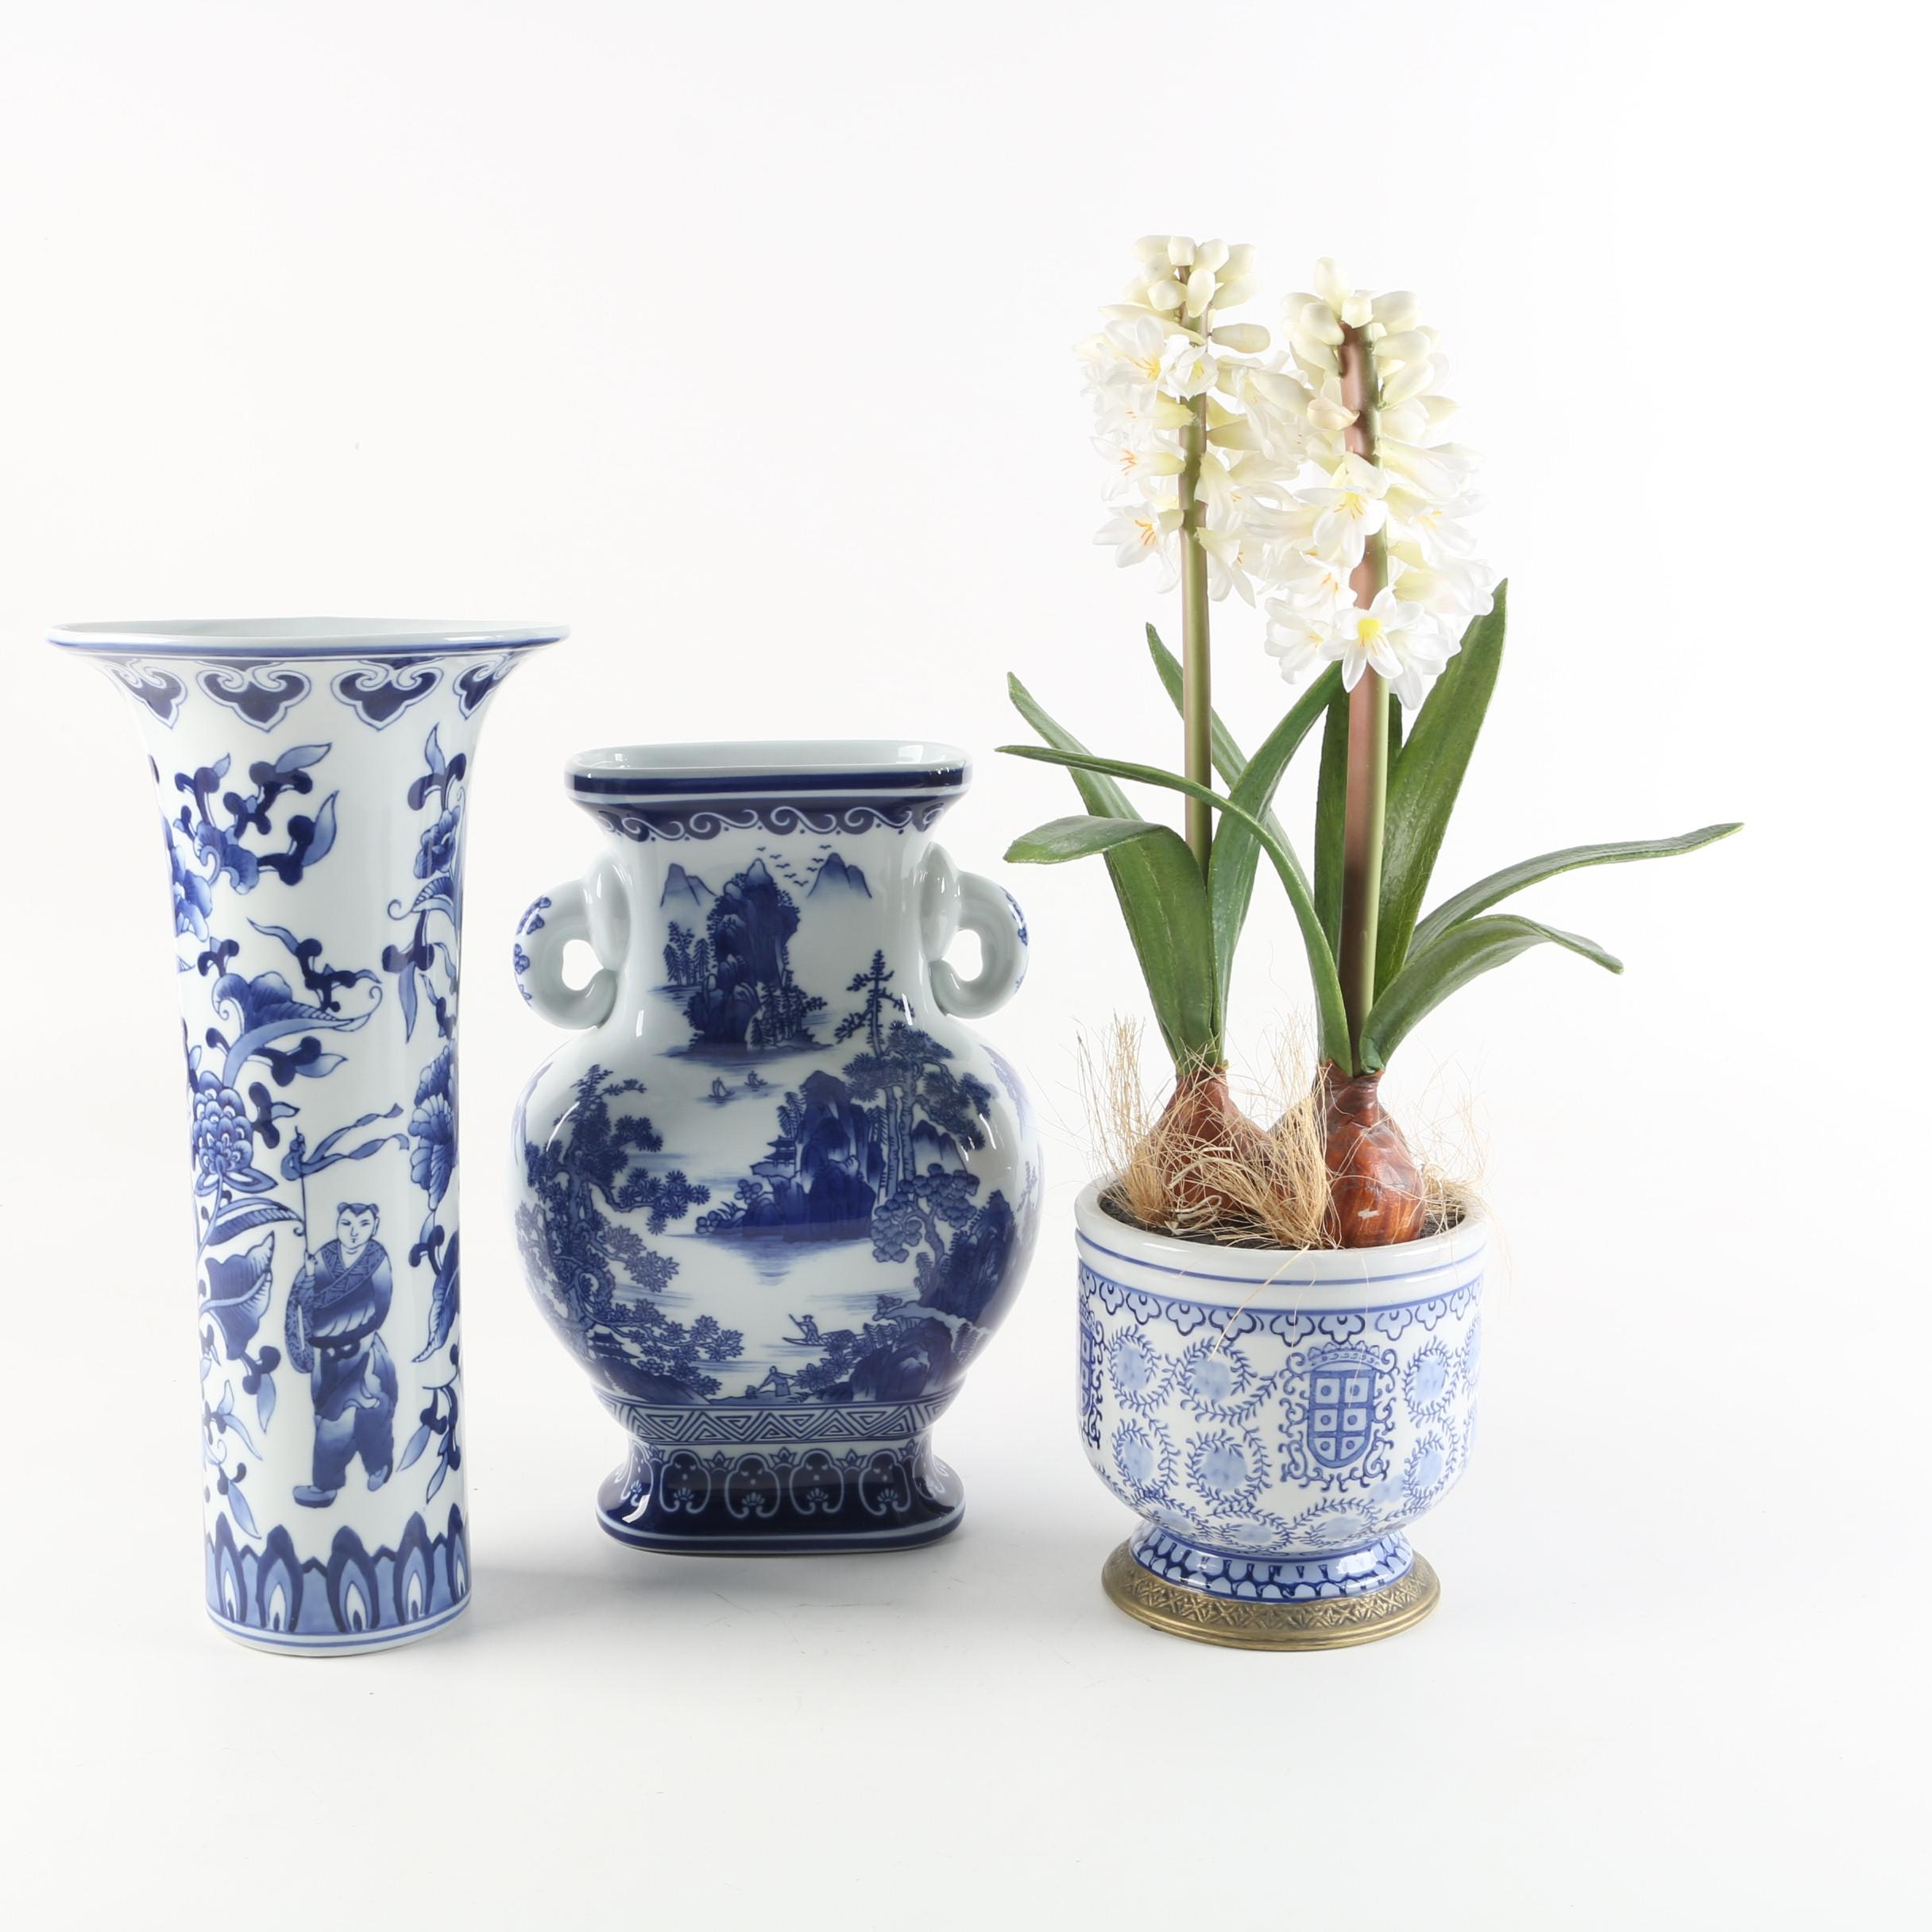 Contemporary Chinese Blue and White Porcelain Décor including Bombay Company